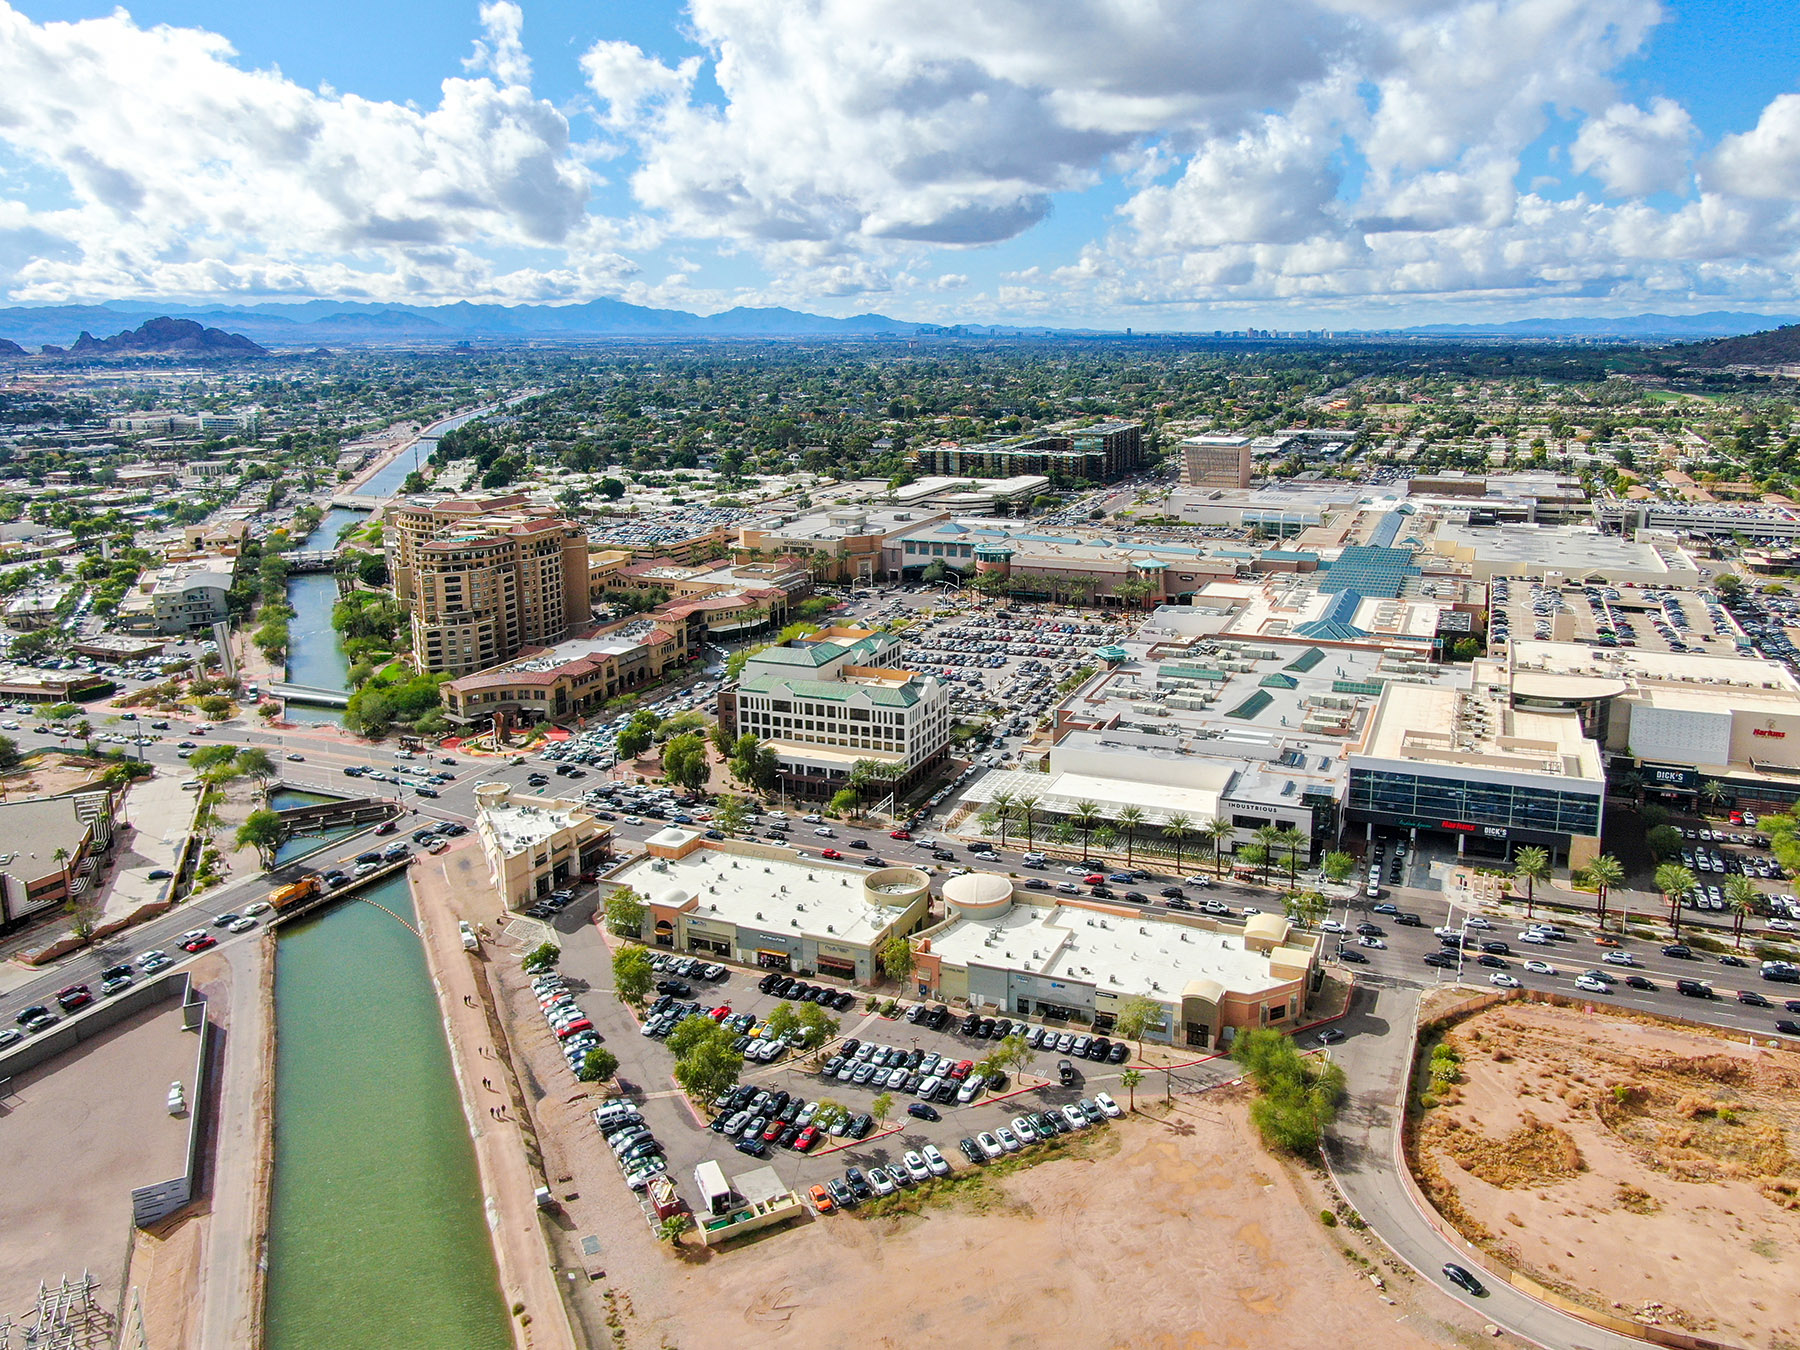 California companies are moving to Scottsdale, Arizona, and other municipalities in the region. (Getty Images)